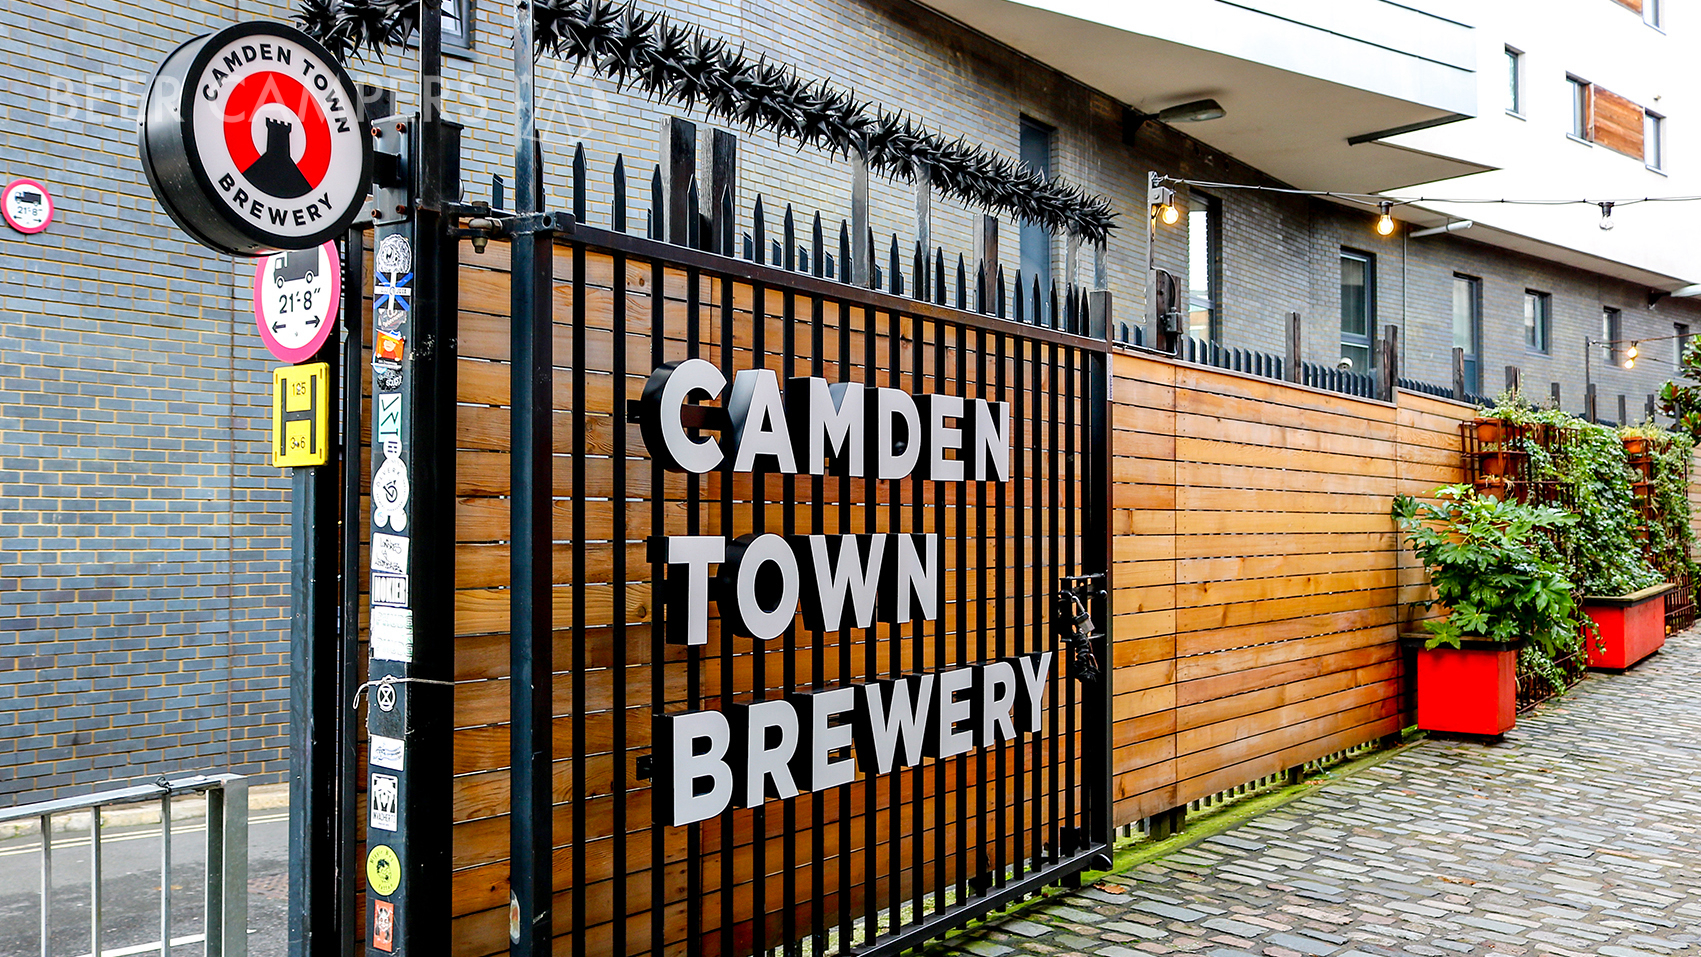 [WATERMARKED] camden town brewery front